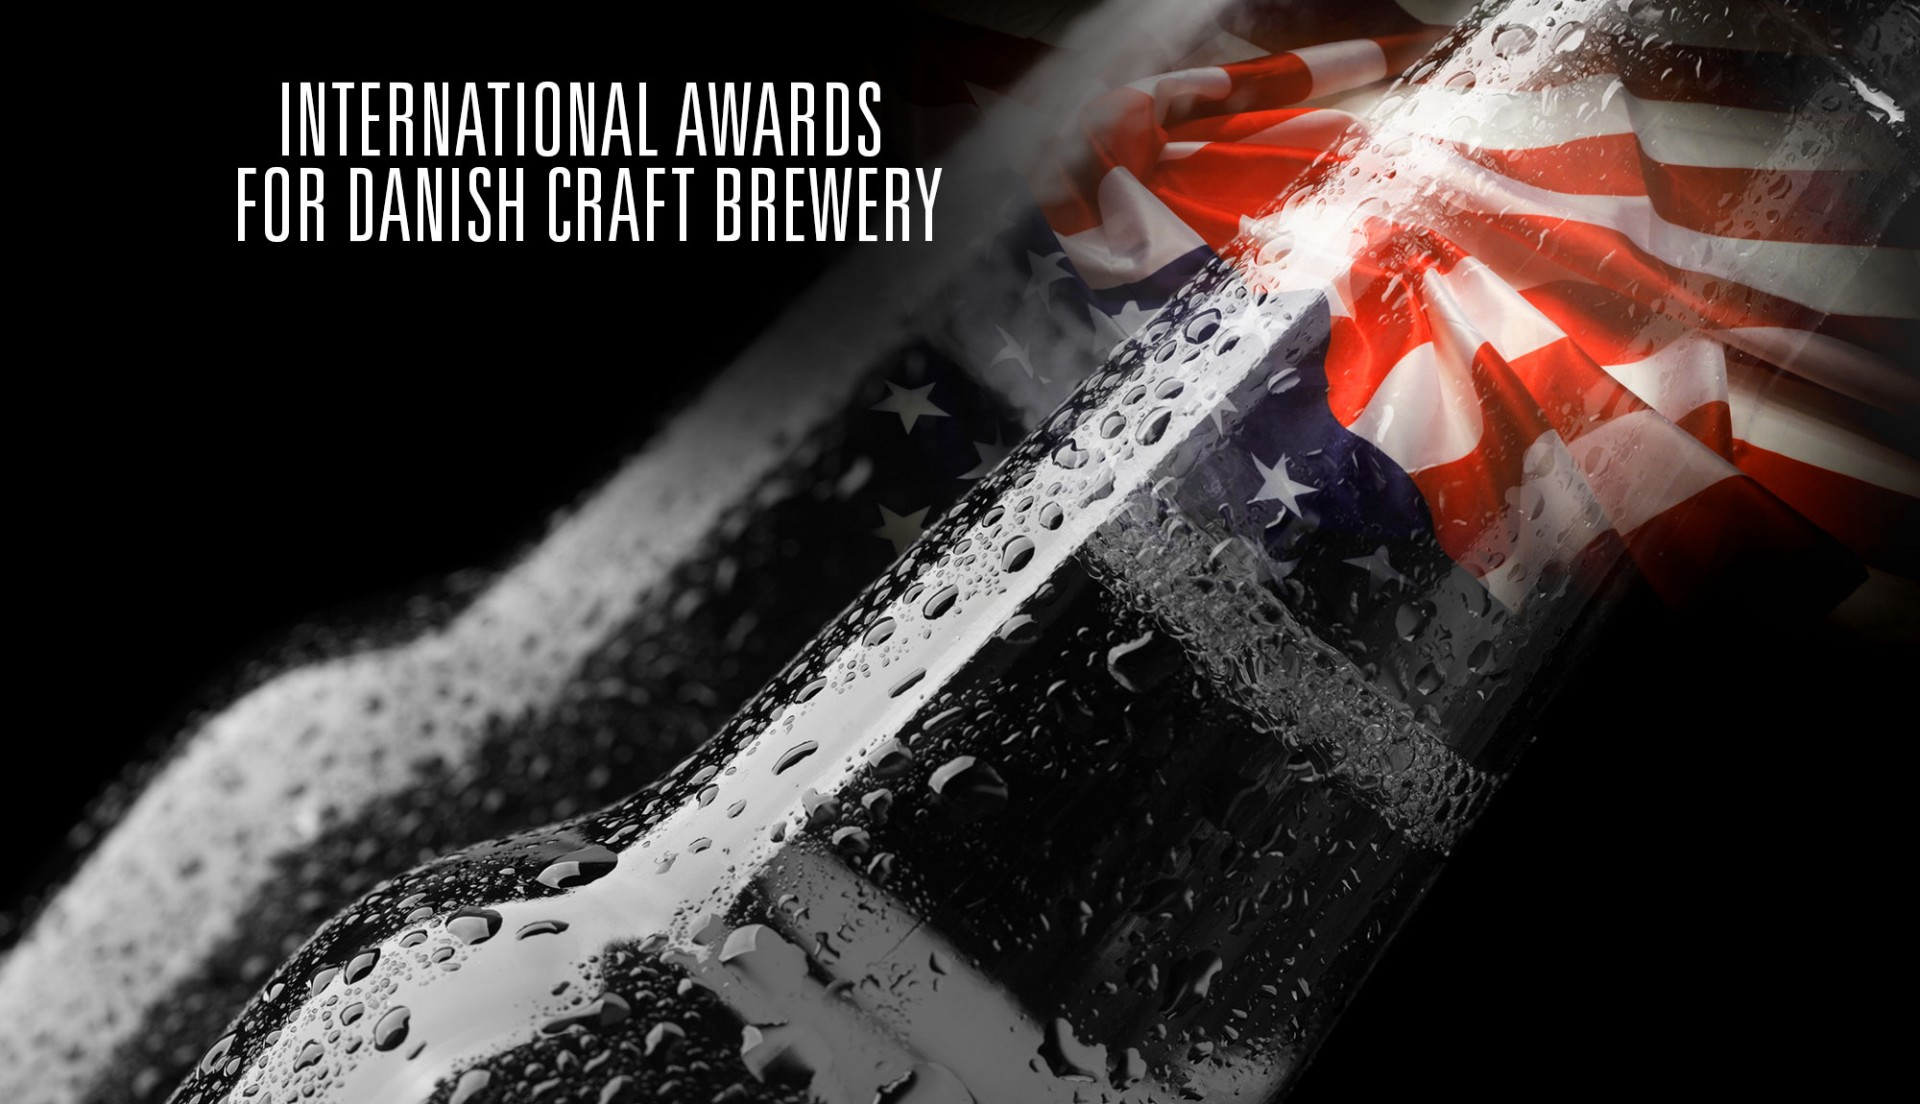 International awards for Danish craft brewery